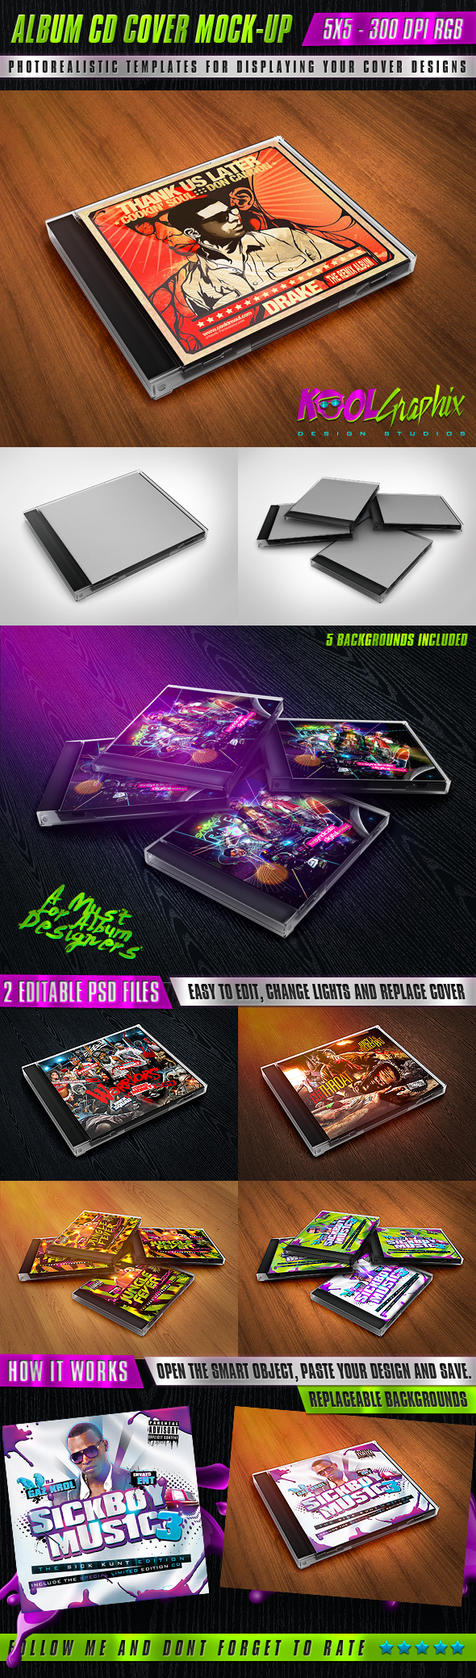 Album CD Cover Mock-Ups by KoolGfx